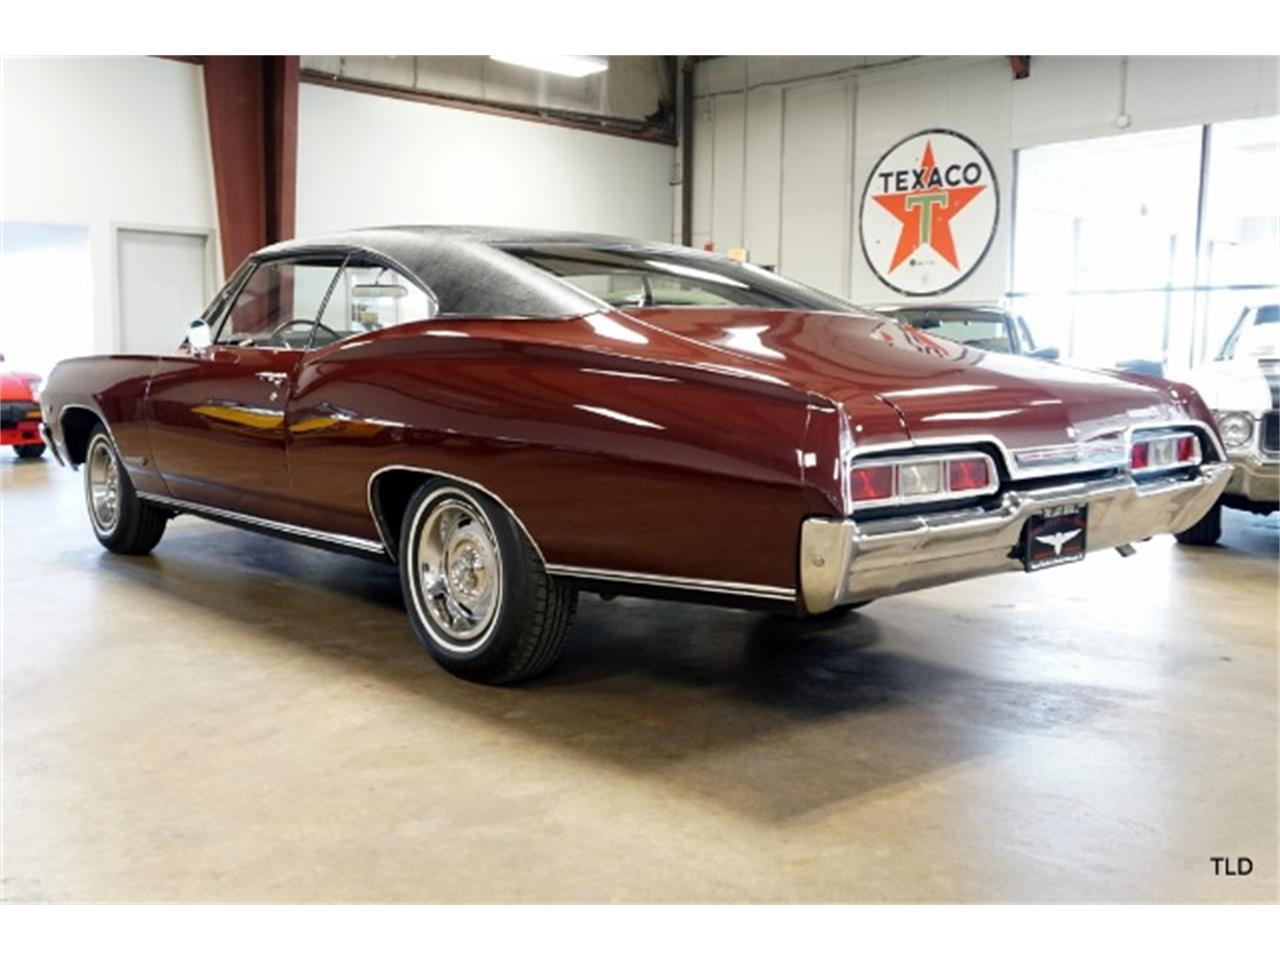 Large Picture of '67 Chevrolet Impala - $36,000.00 Offered by The Last Detail - P4FZ